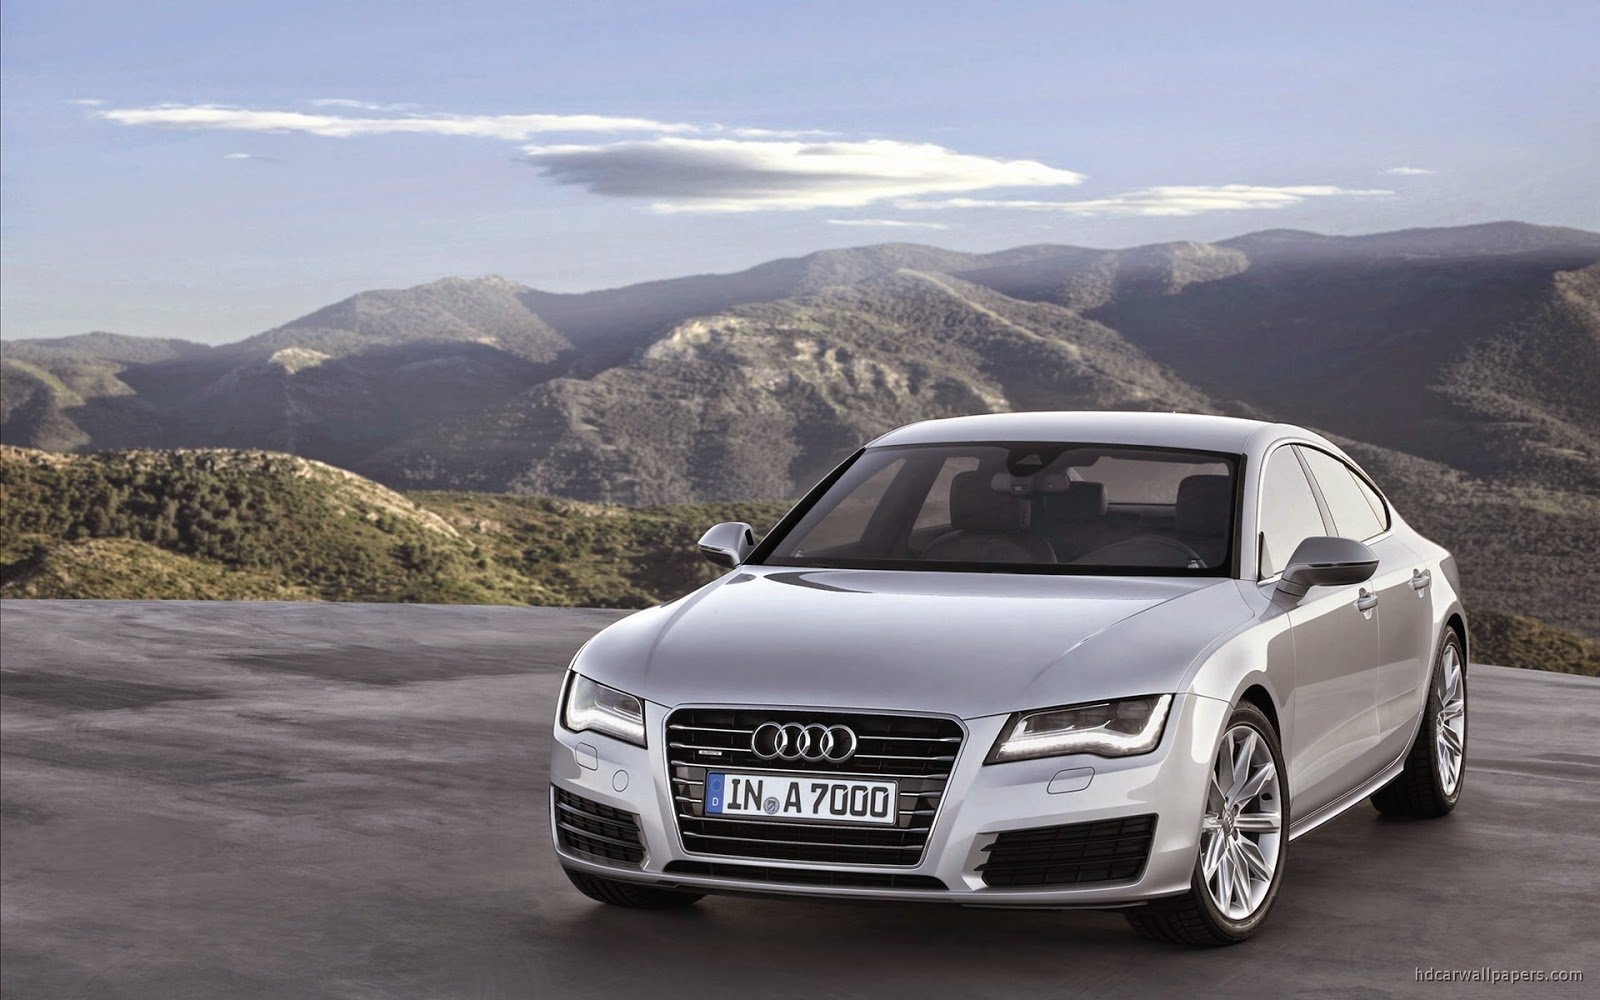 Latest Audi Car Hd Wallpapers Hd Wallpapers High Quality Free Download